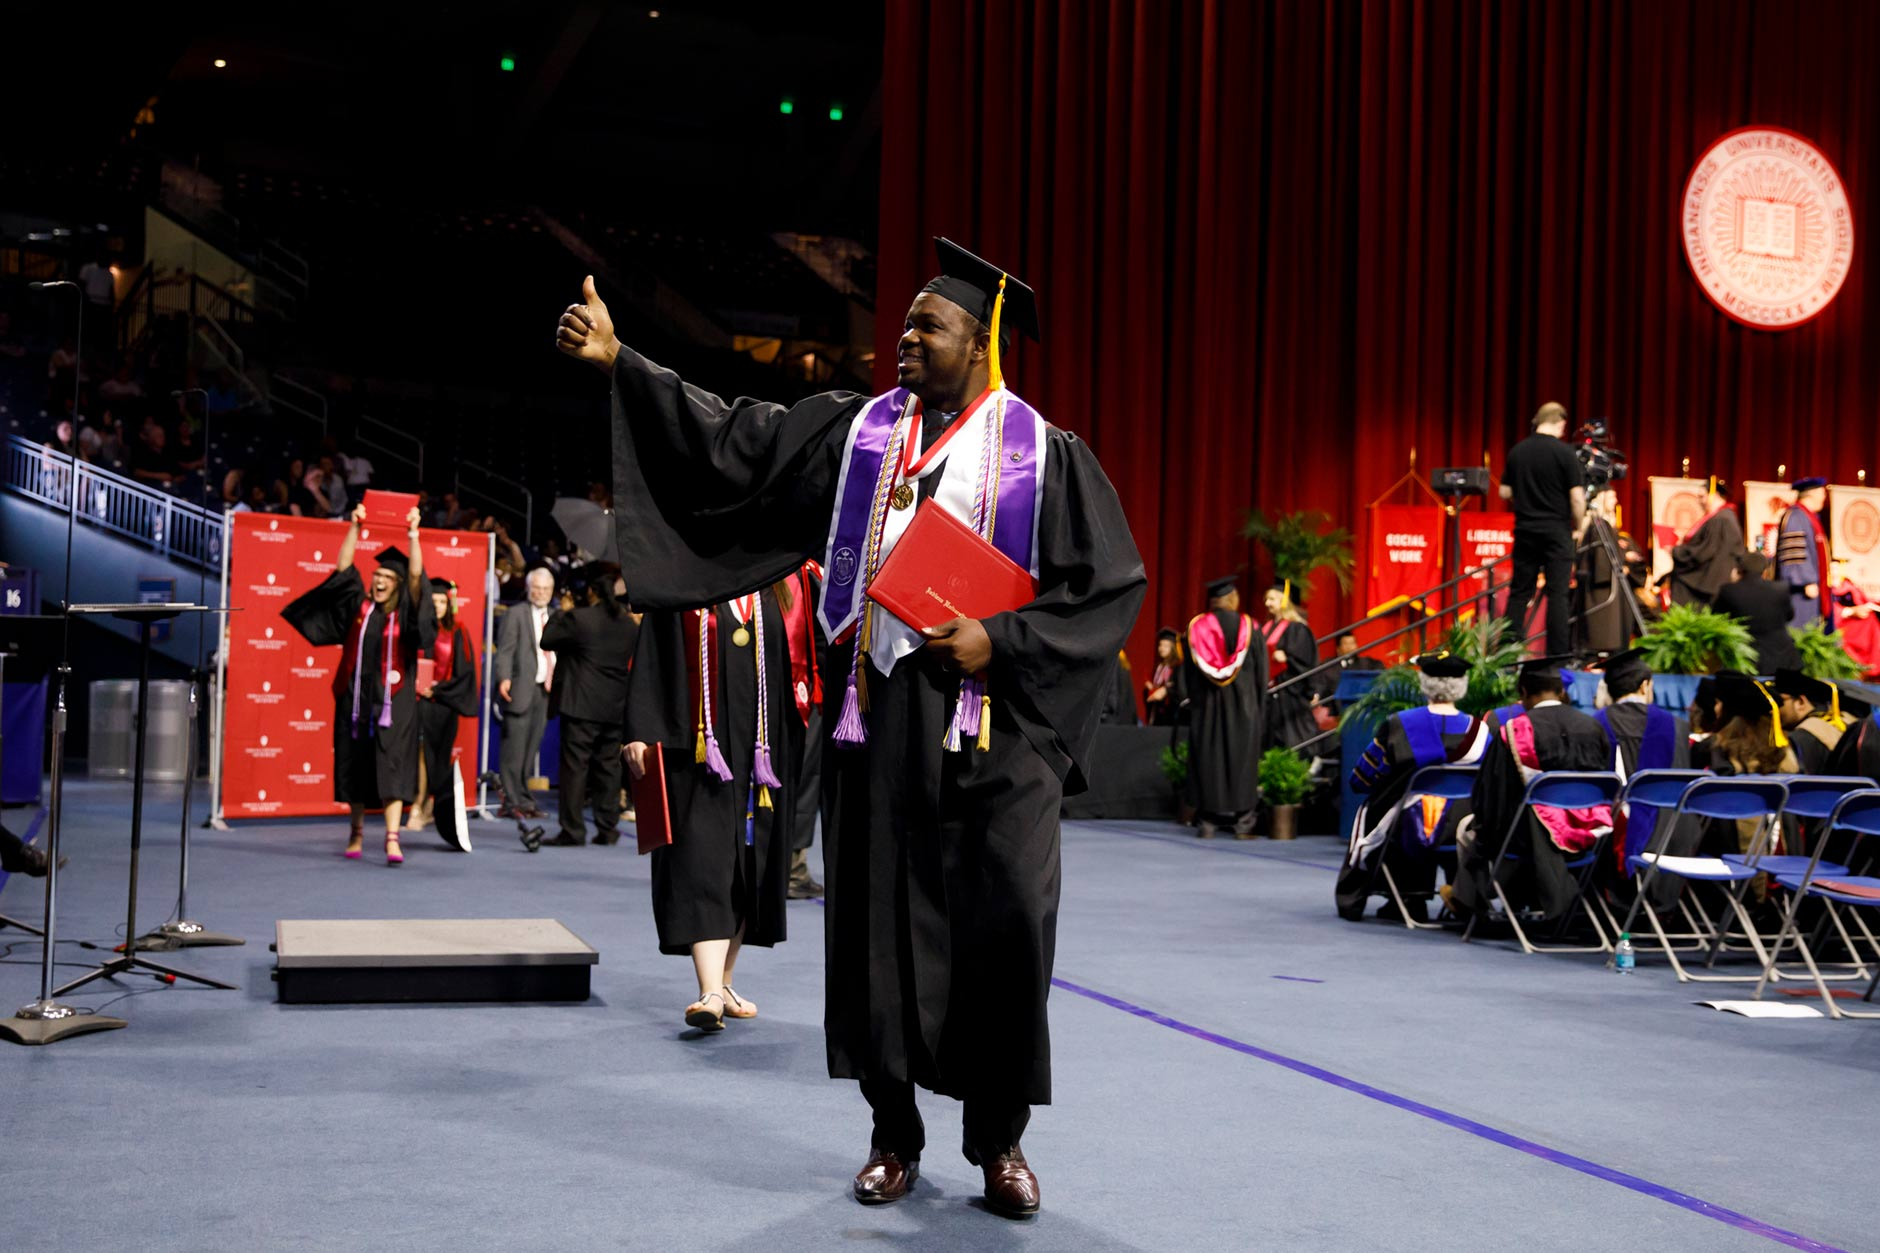 Graduate Desmond Atem reacts to family in the audience after receiving his diploma during the Indiana University South Bend Commencement at the University of Notre Dame on Tuesday, May 8, 2018. (James Brosher/IU Communications)